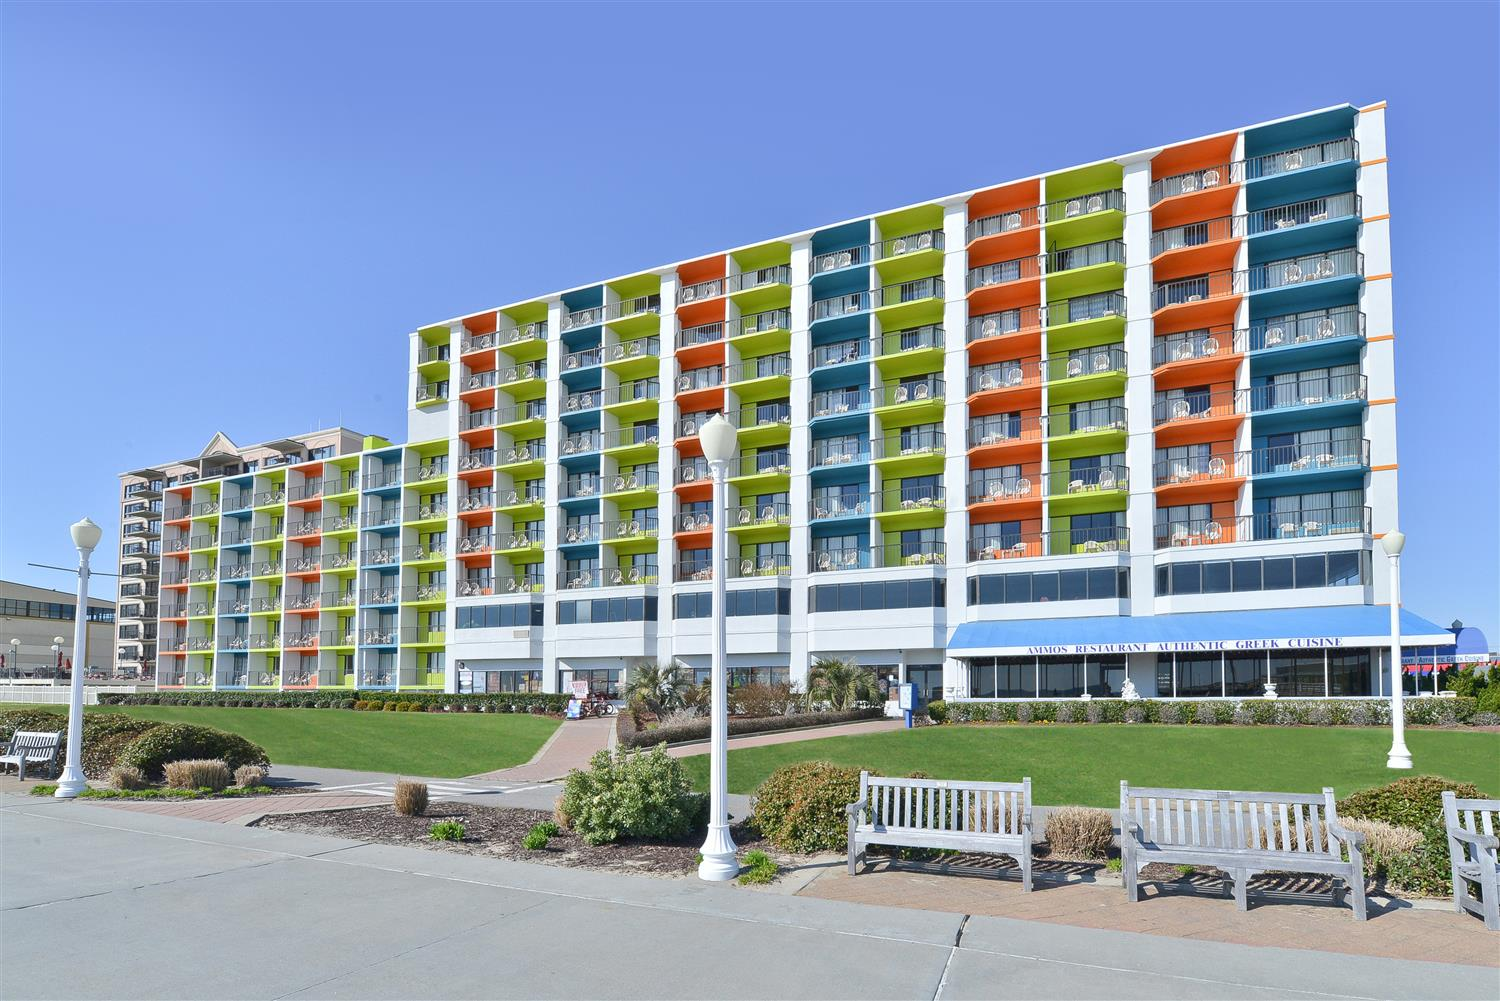 Hotels Near Virginia Beach Convention Center